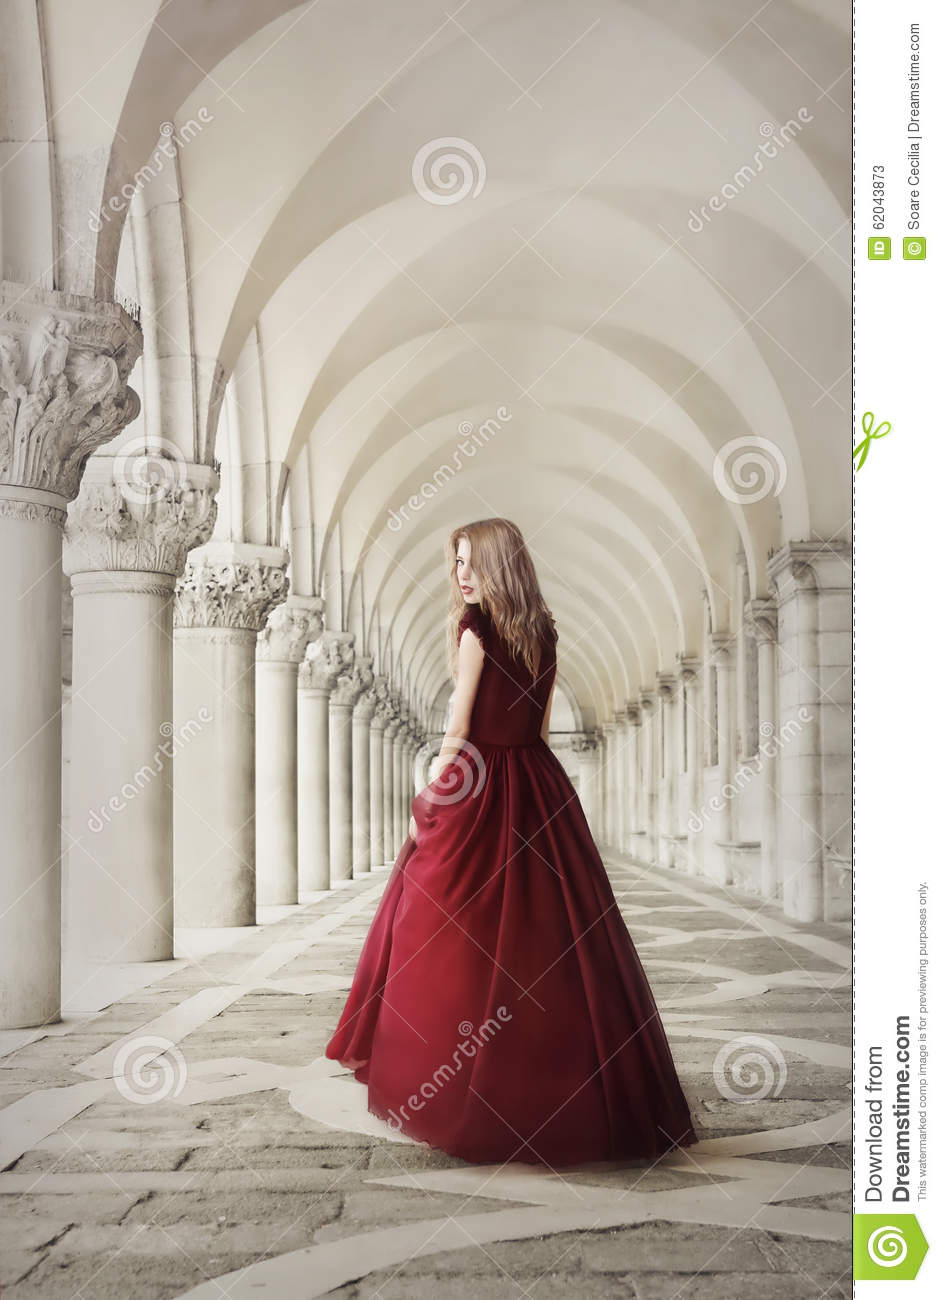 Woman In Red Dress Near San Marco Square Venice Stock Image - Image ...